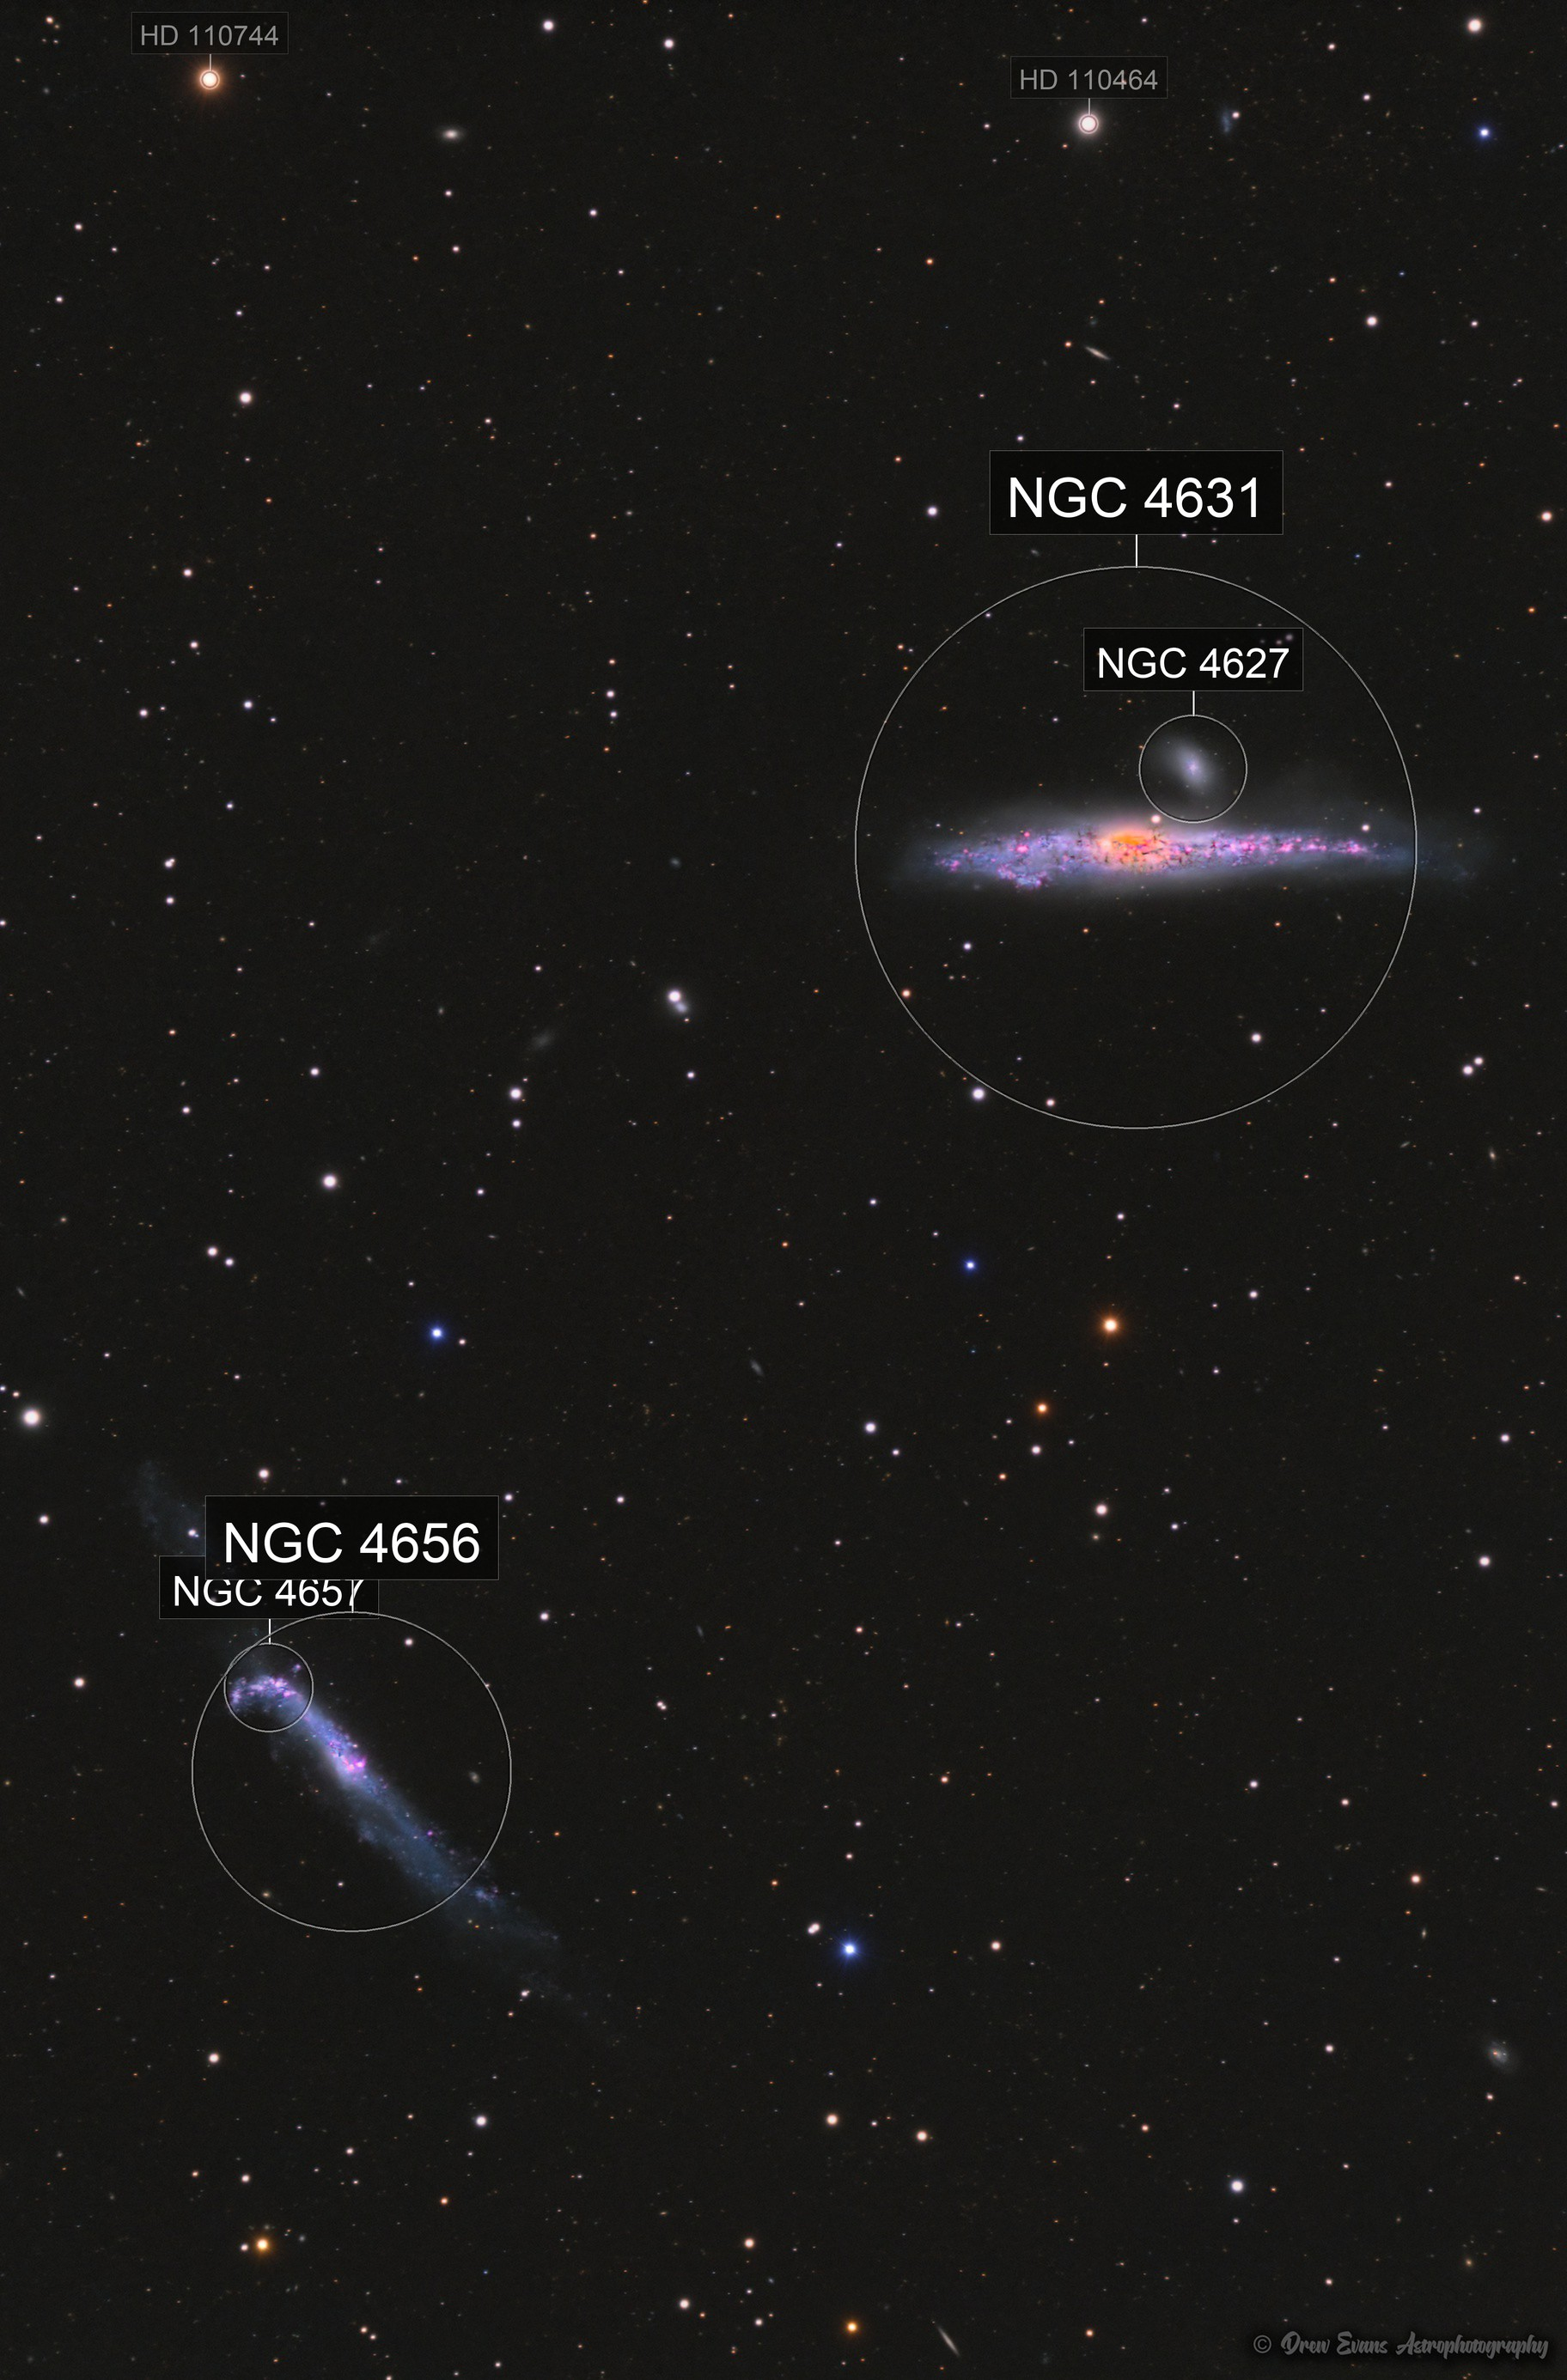 The Hockey Stick (NGC 4656) and Whale Galaxy (NGC 4631)